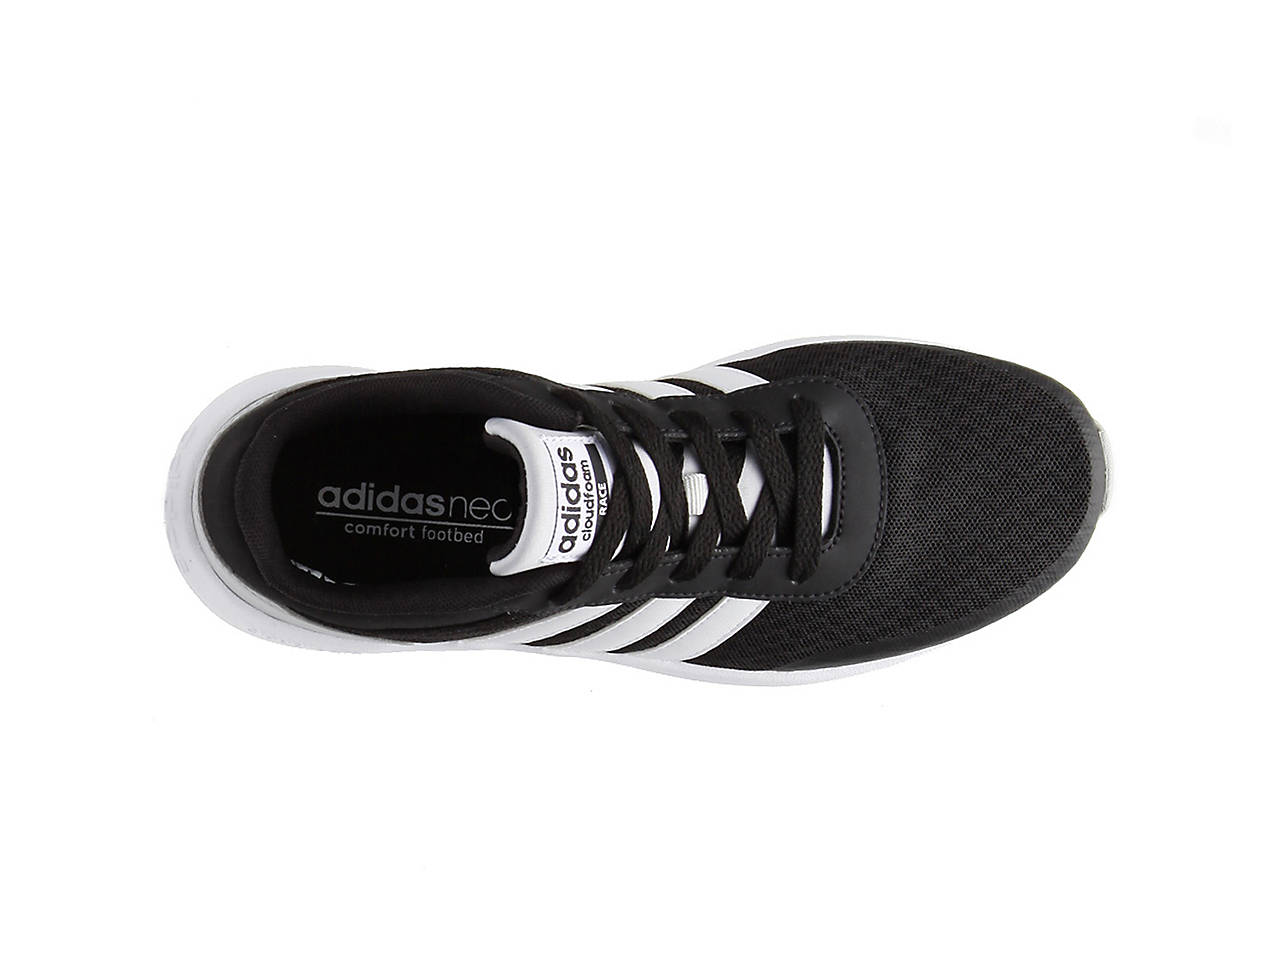 adidas neo cloudfoam race boys' athletic shoes